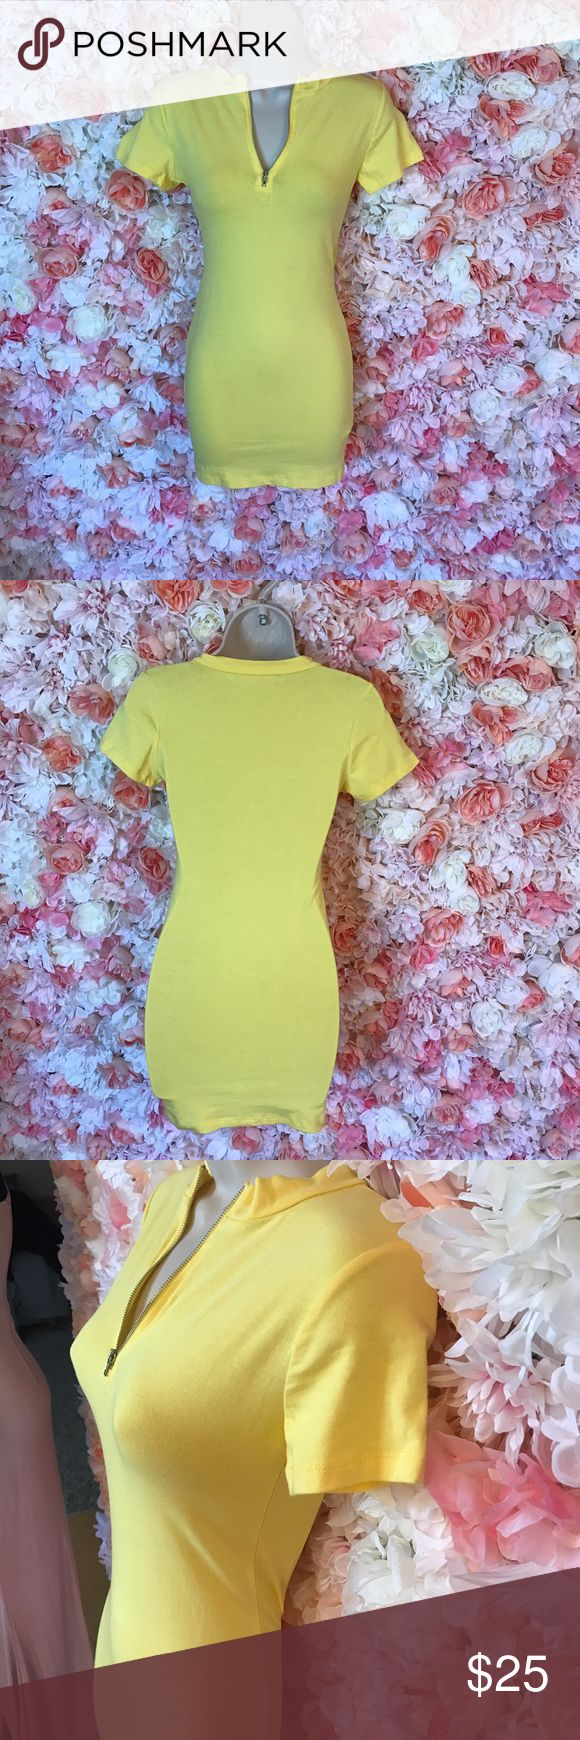 Yellow t shirt dress Can be worn zipped up or down for comfort. Pair with your favorite sneakers for casual look or heels for a night out Dresses Mini